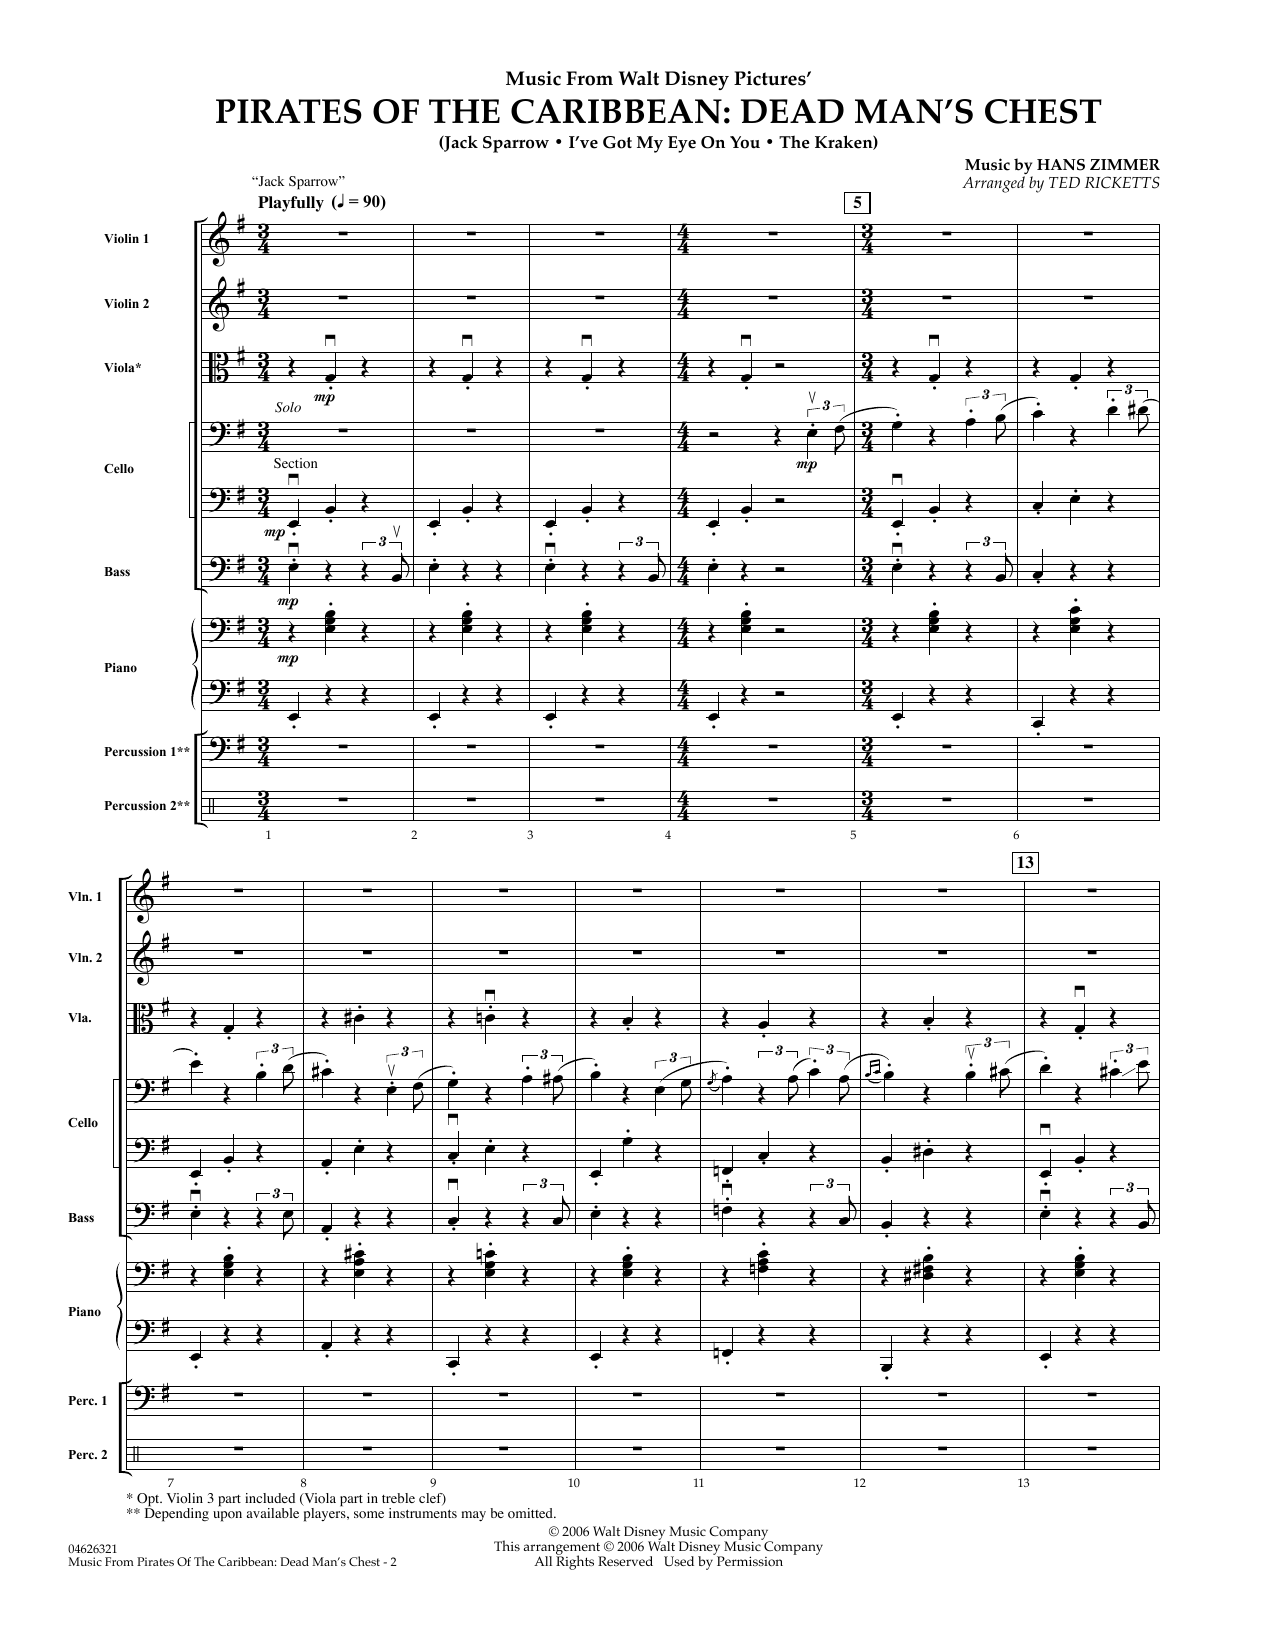 Music from Pirates of the Caribbean: Dead Man's Chest (COMPLETE) sheet music for orchestra by Hans Zimmer and Ted Ricketts. Score Image Preview.